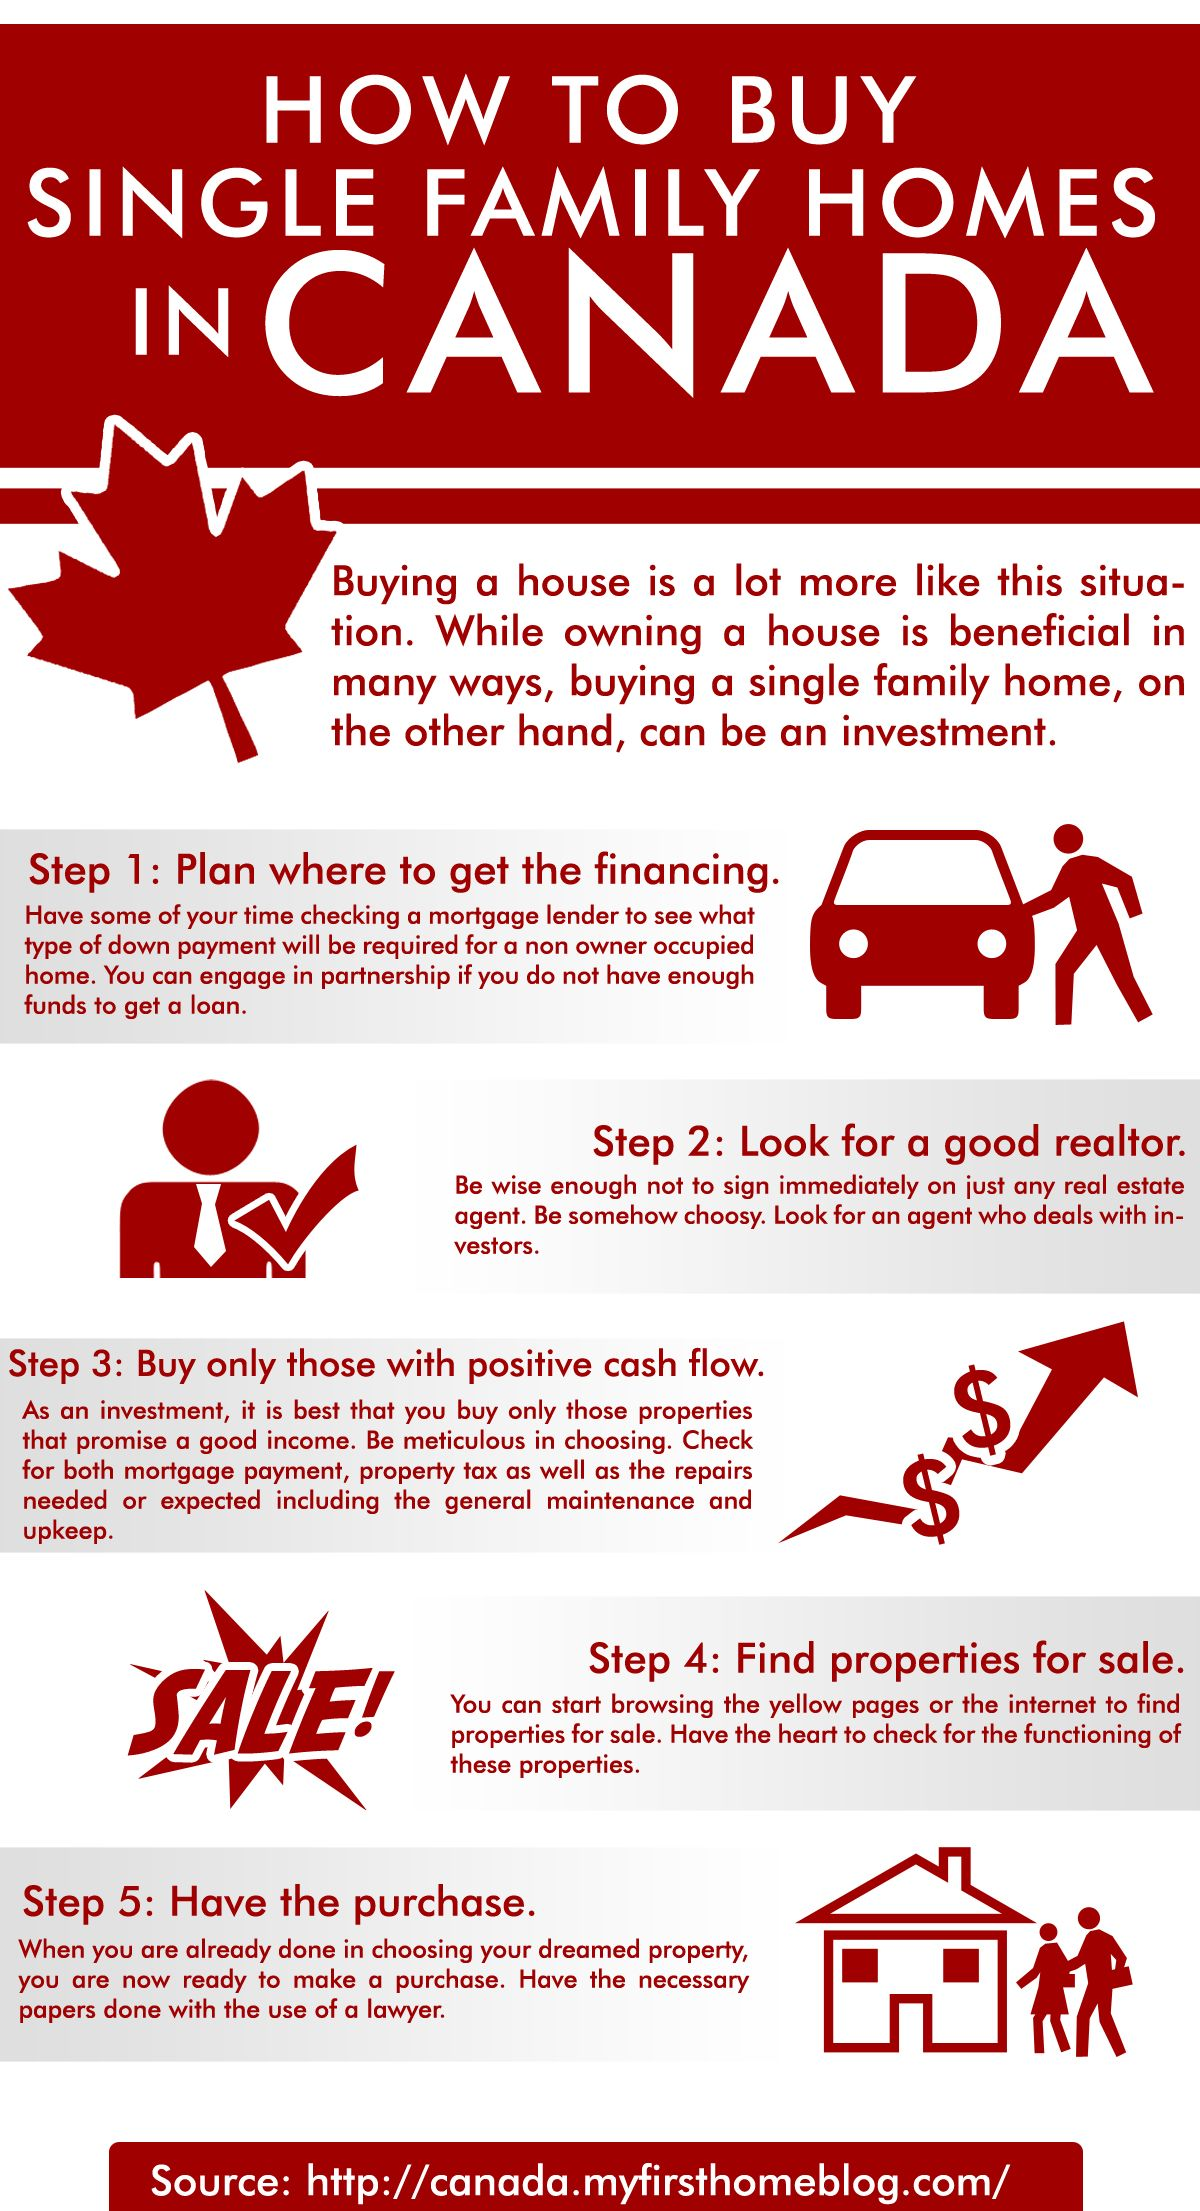 How To Buy Single Family Homes In Canada Myfirsthomeblog